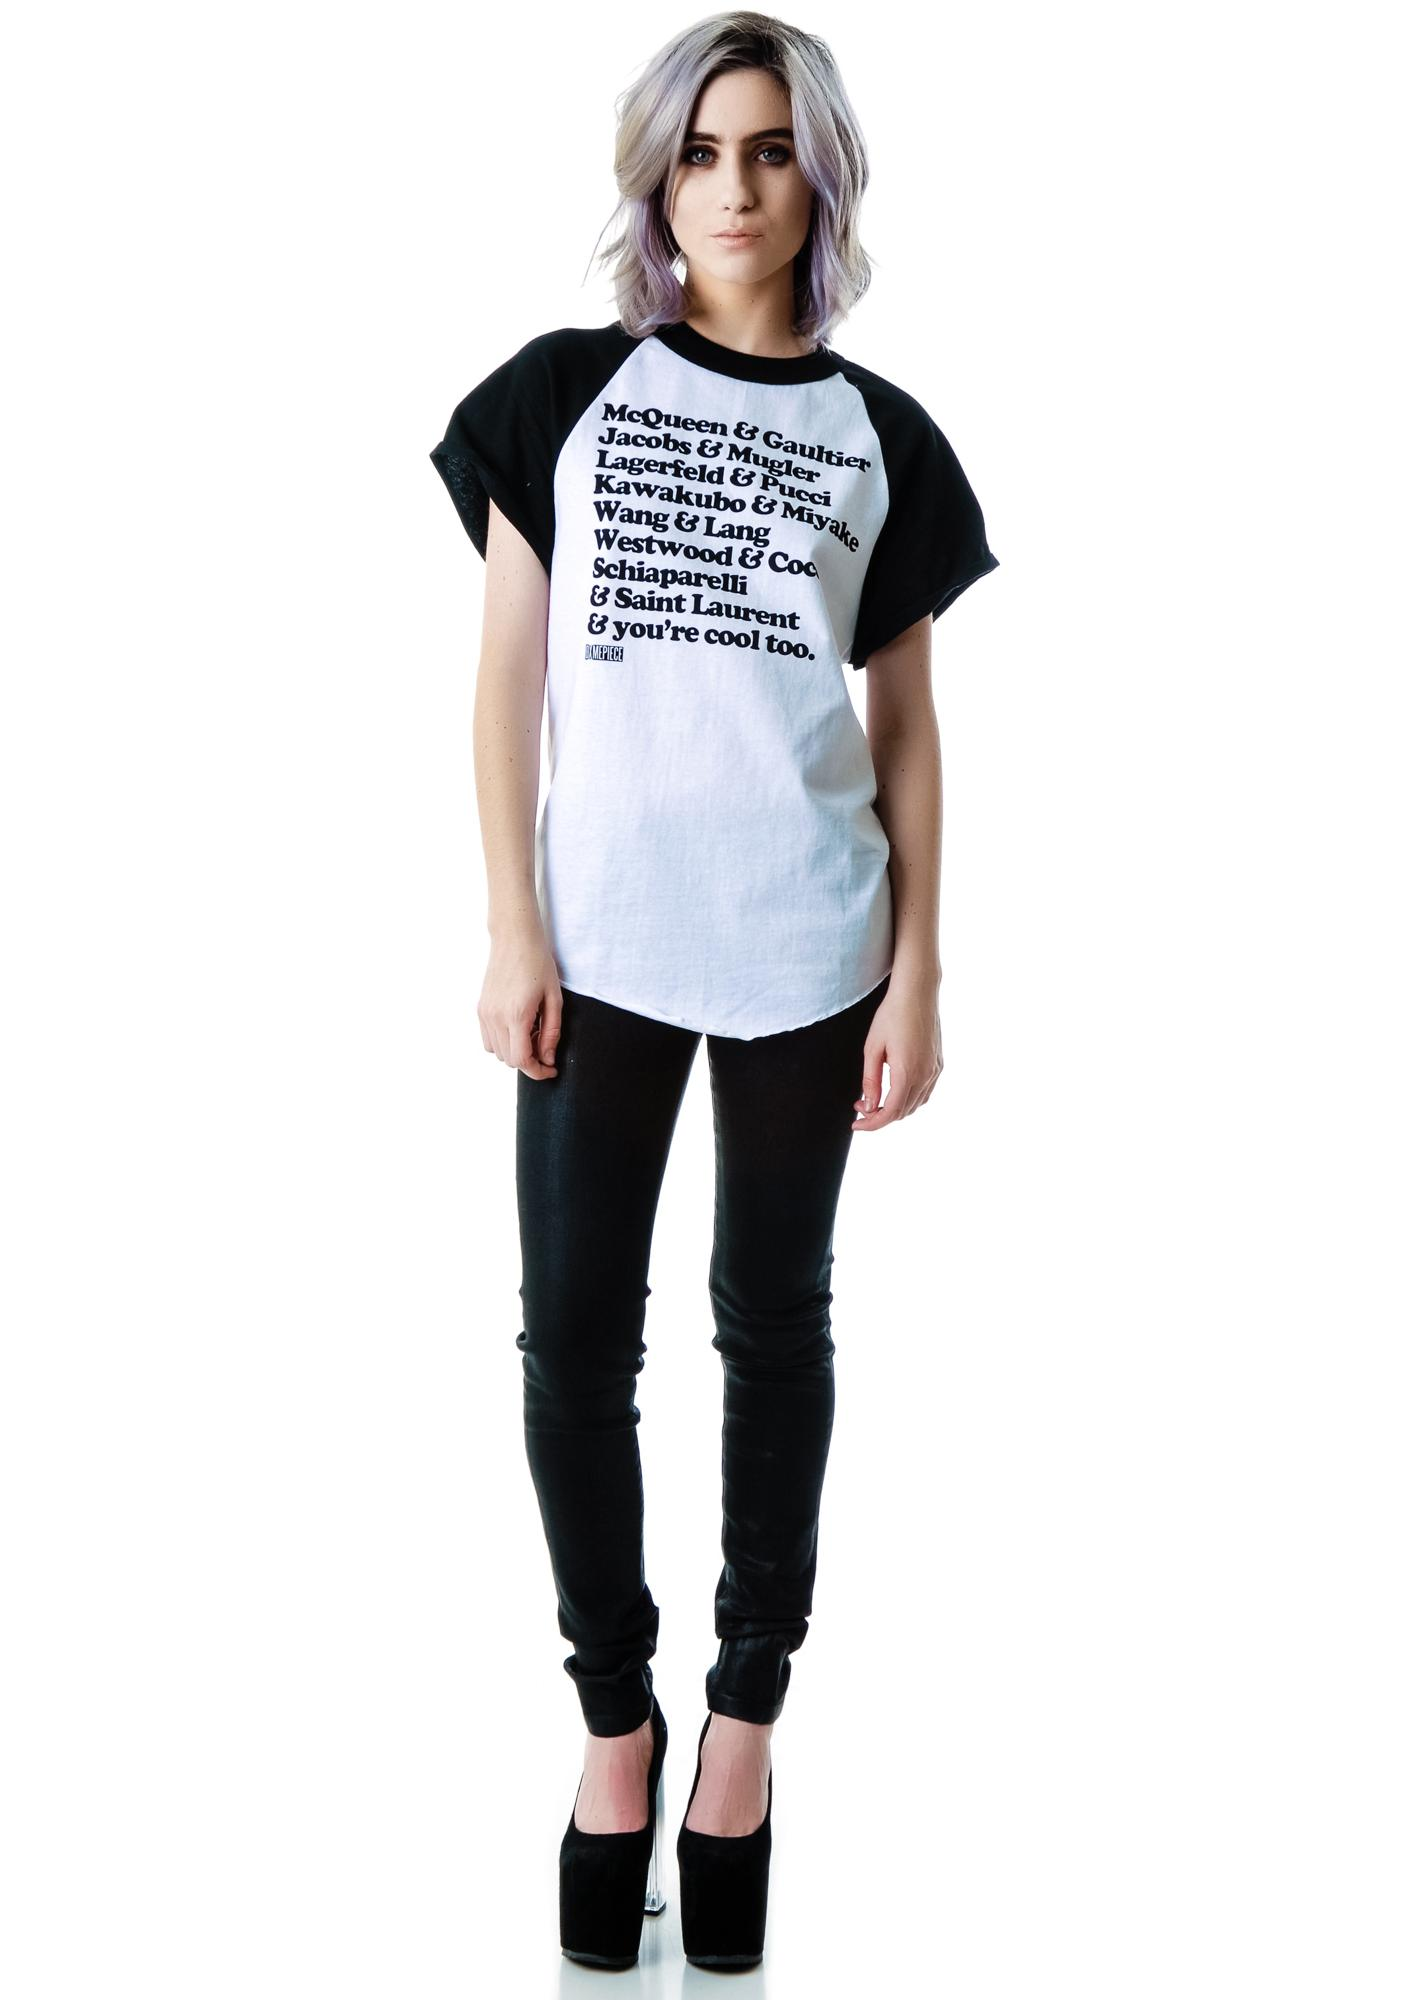 Dimepiece You're Cool Too Sport Raglan